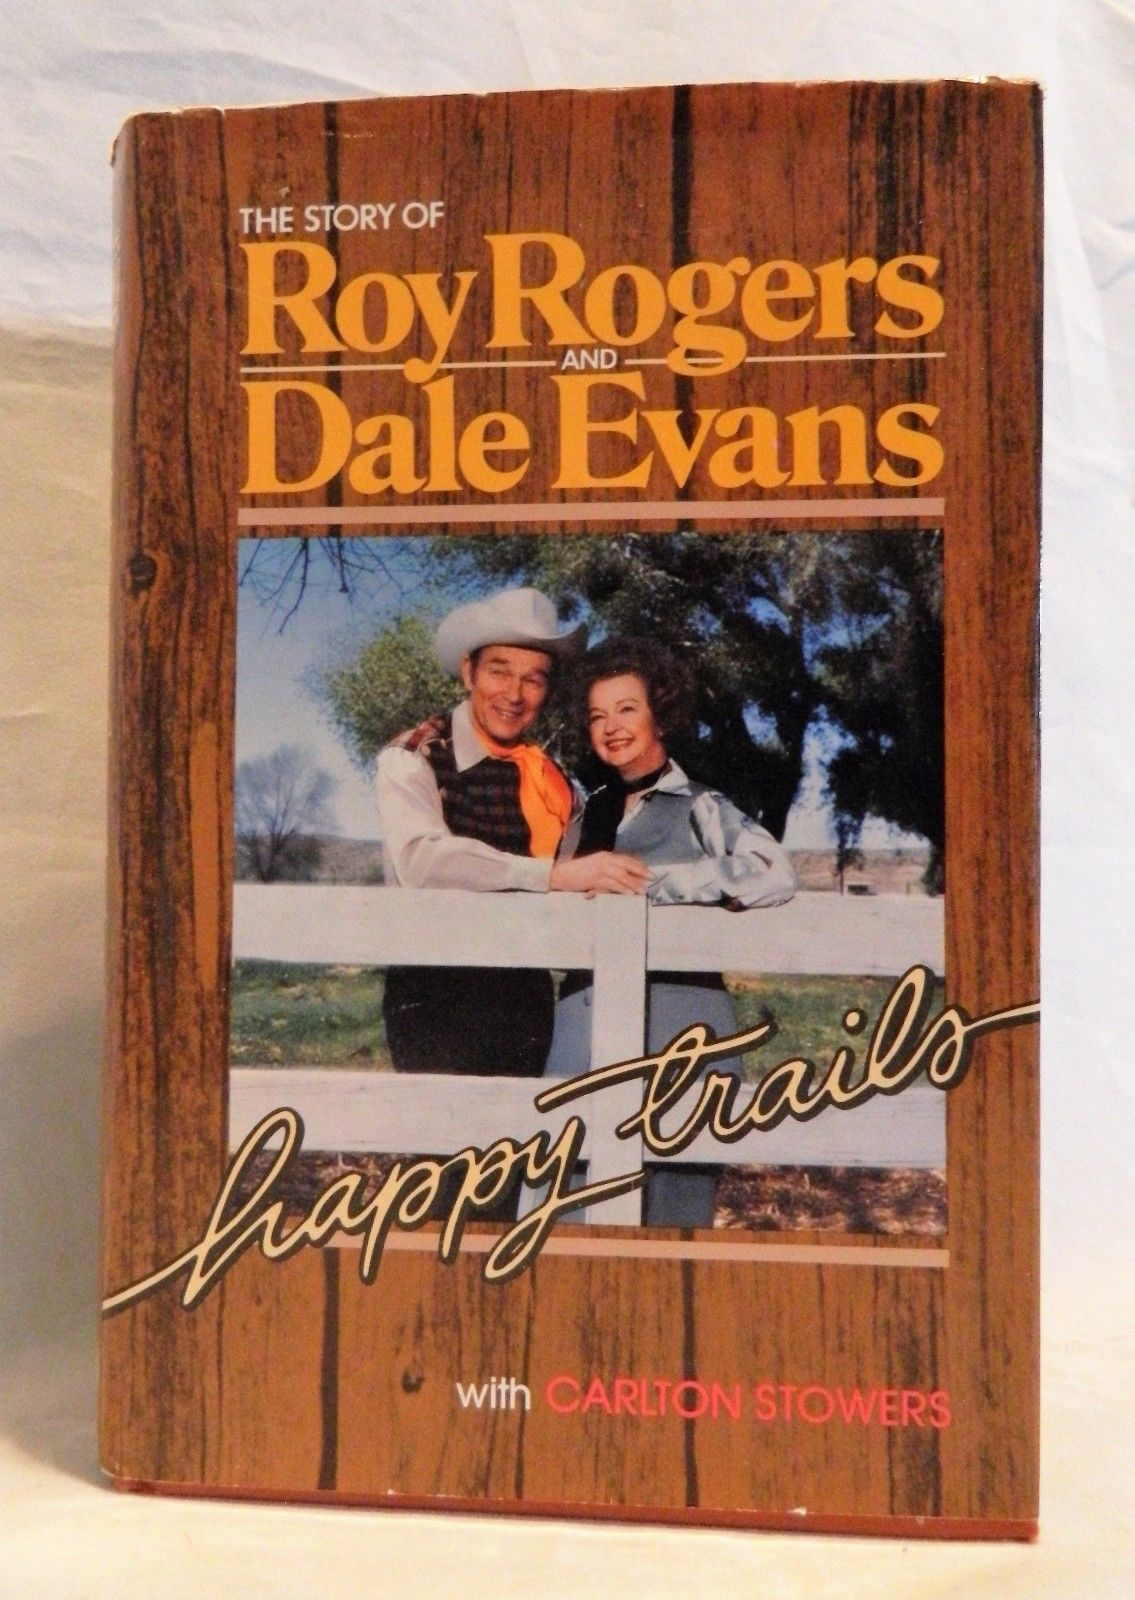 Happy Trails The Story of Roy Rogers & Dale Evans by Carlton Stowers HB DJ 1979